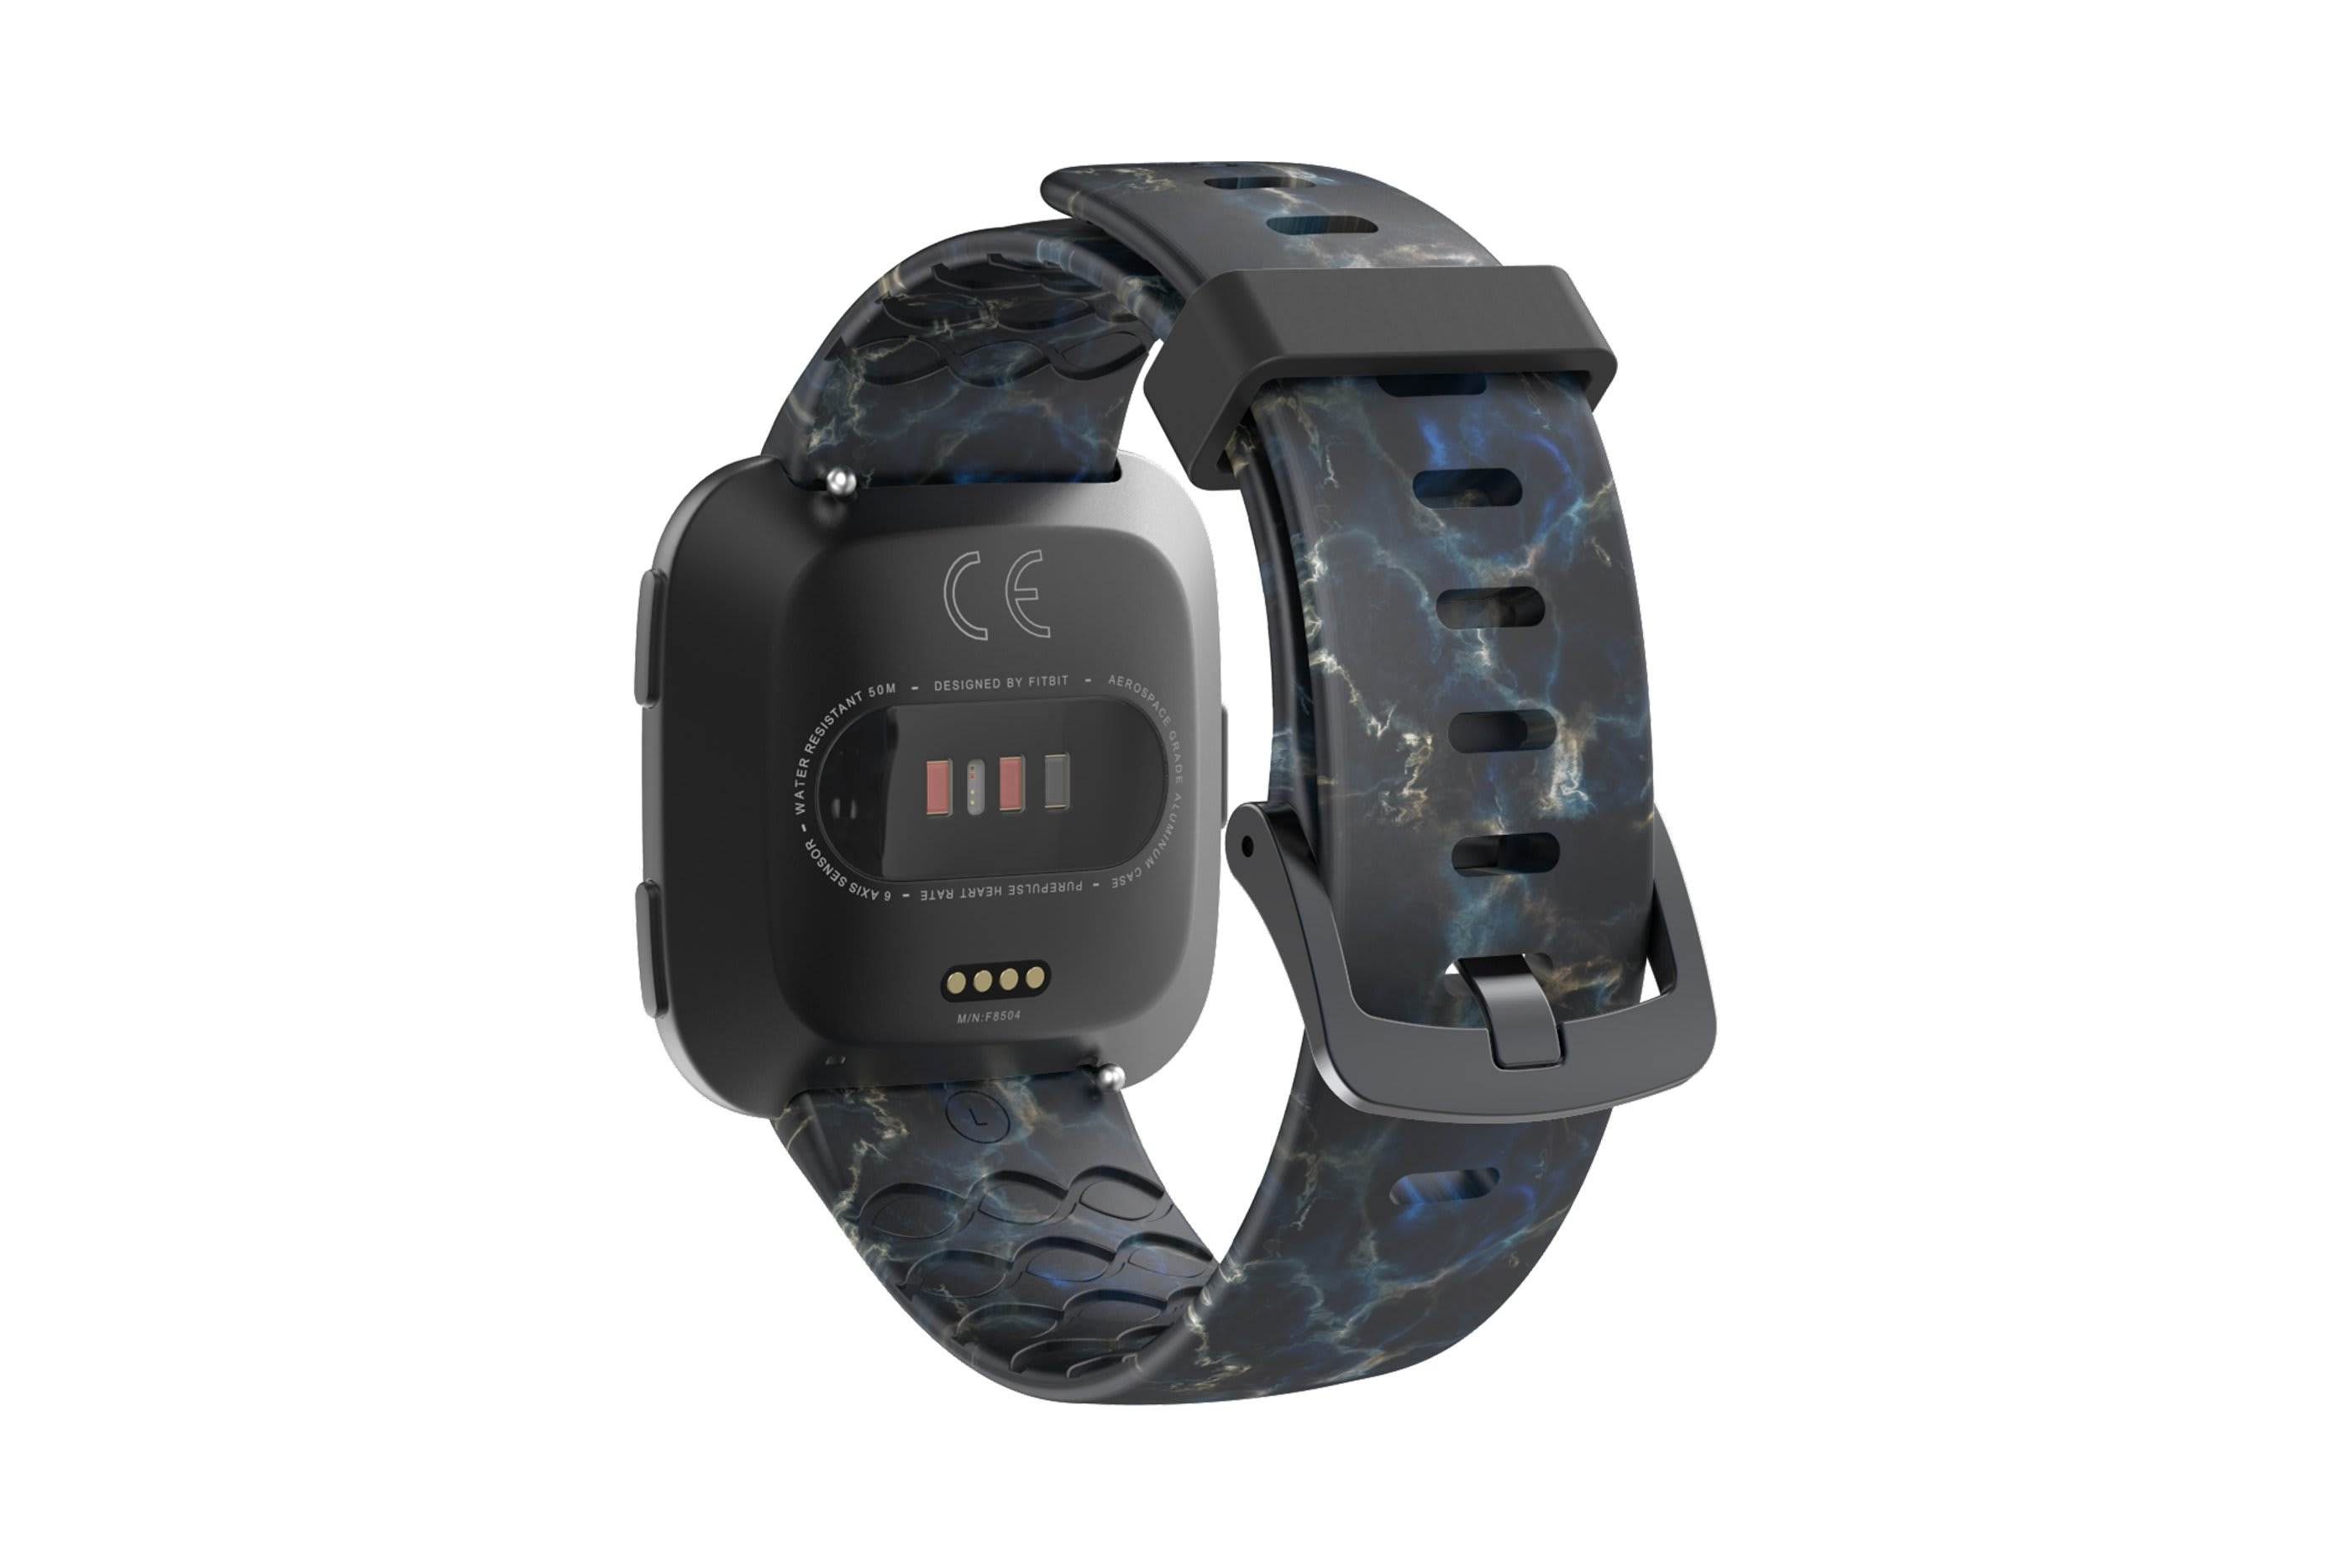 Nomad Rapids fitbit versa watch band with gray hardware viewed from top down